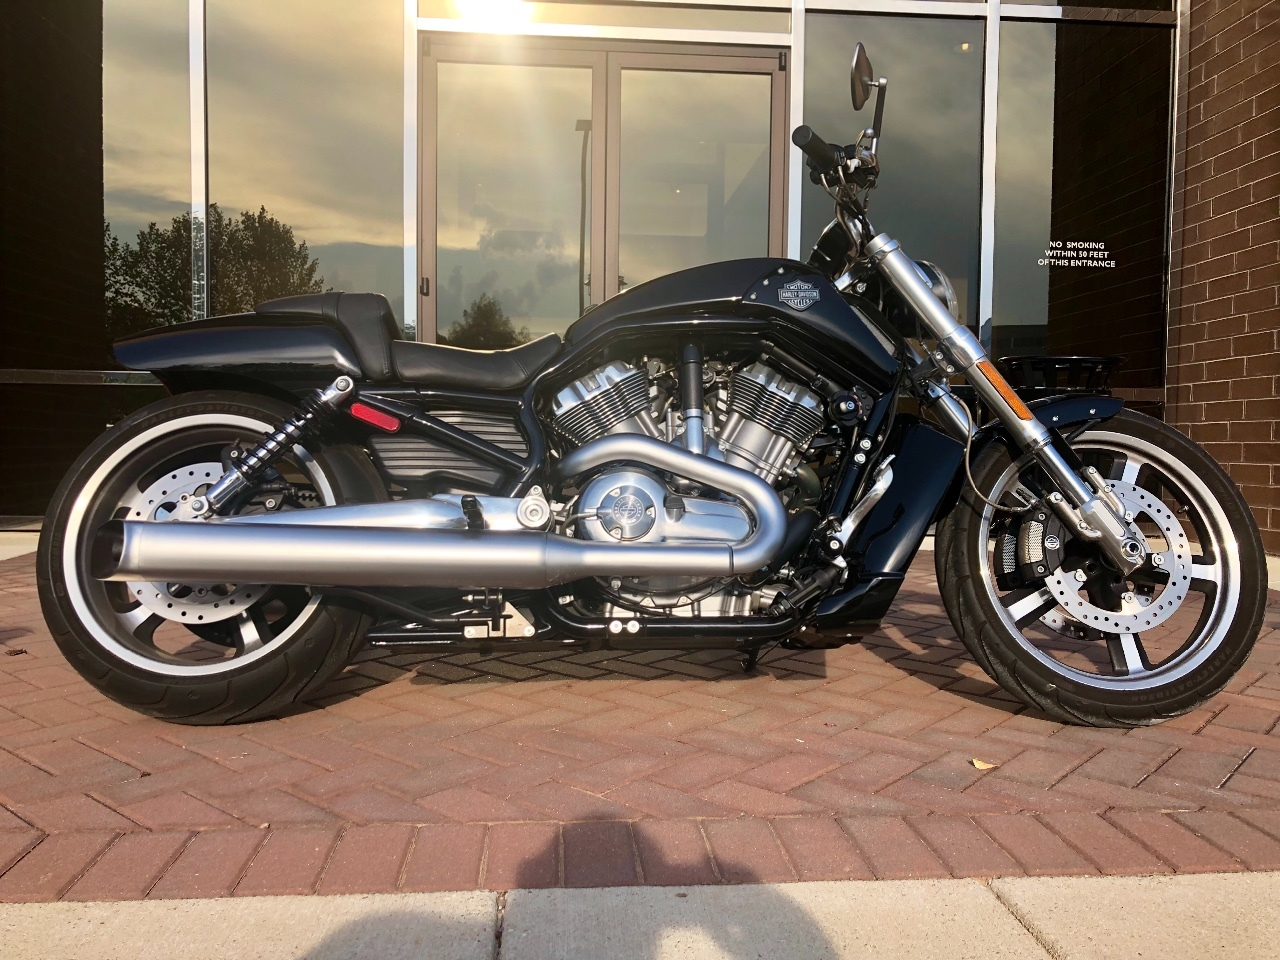 V-Rod For Sale - Harley-Davidson Motorcycles - Cycle Trader